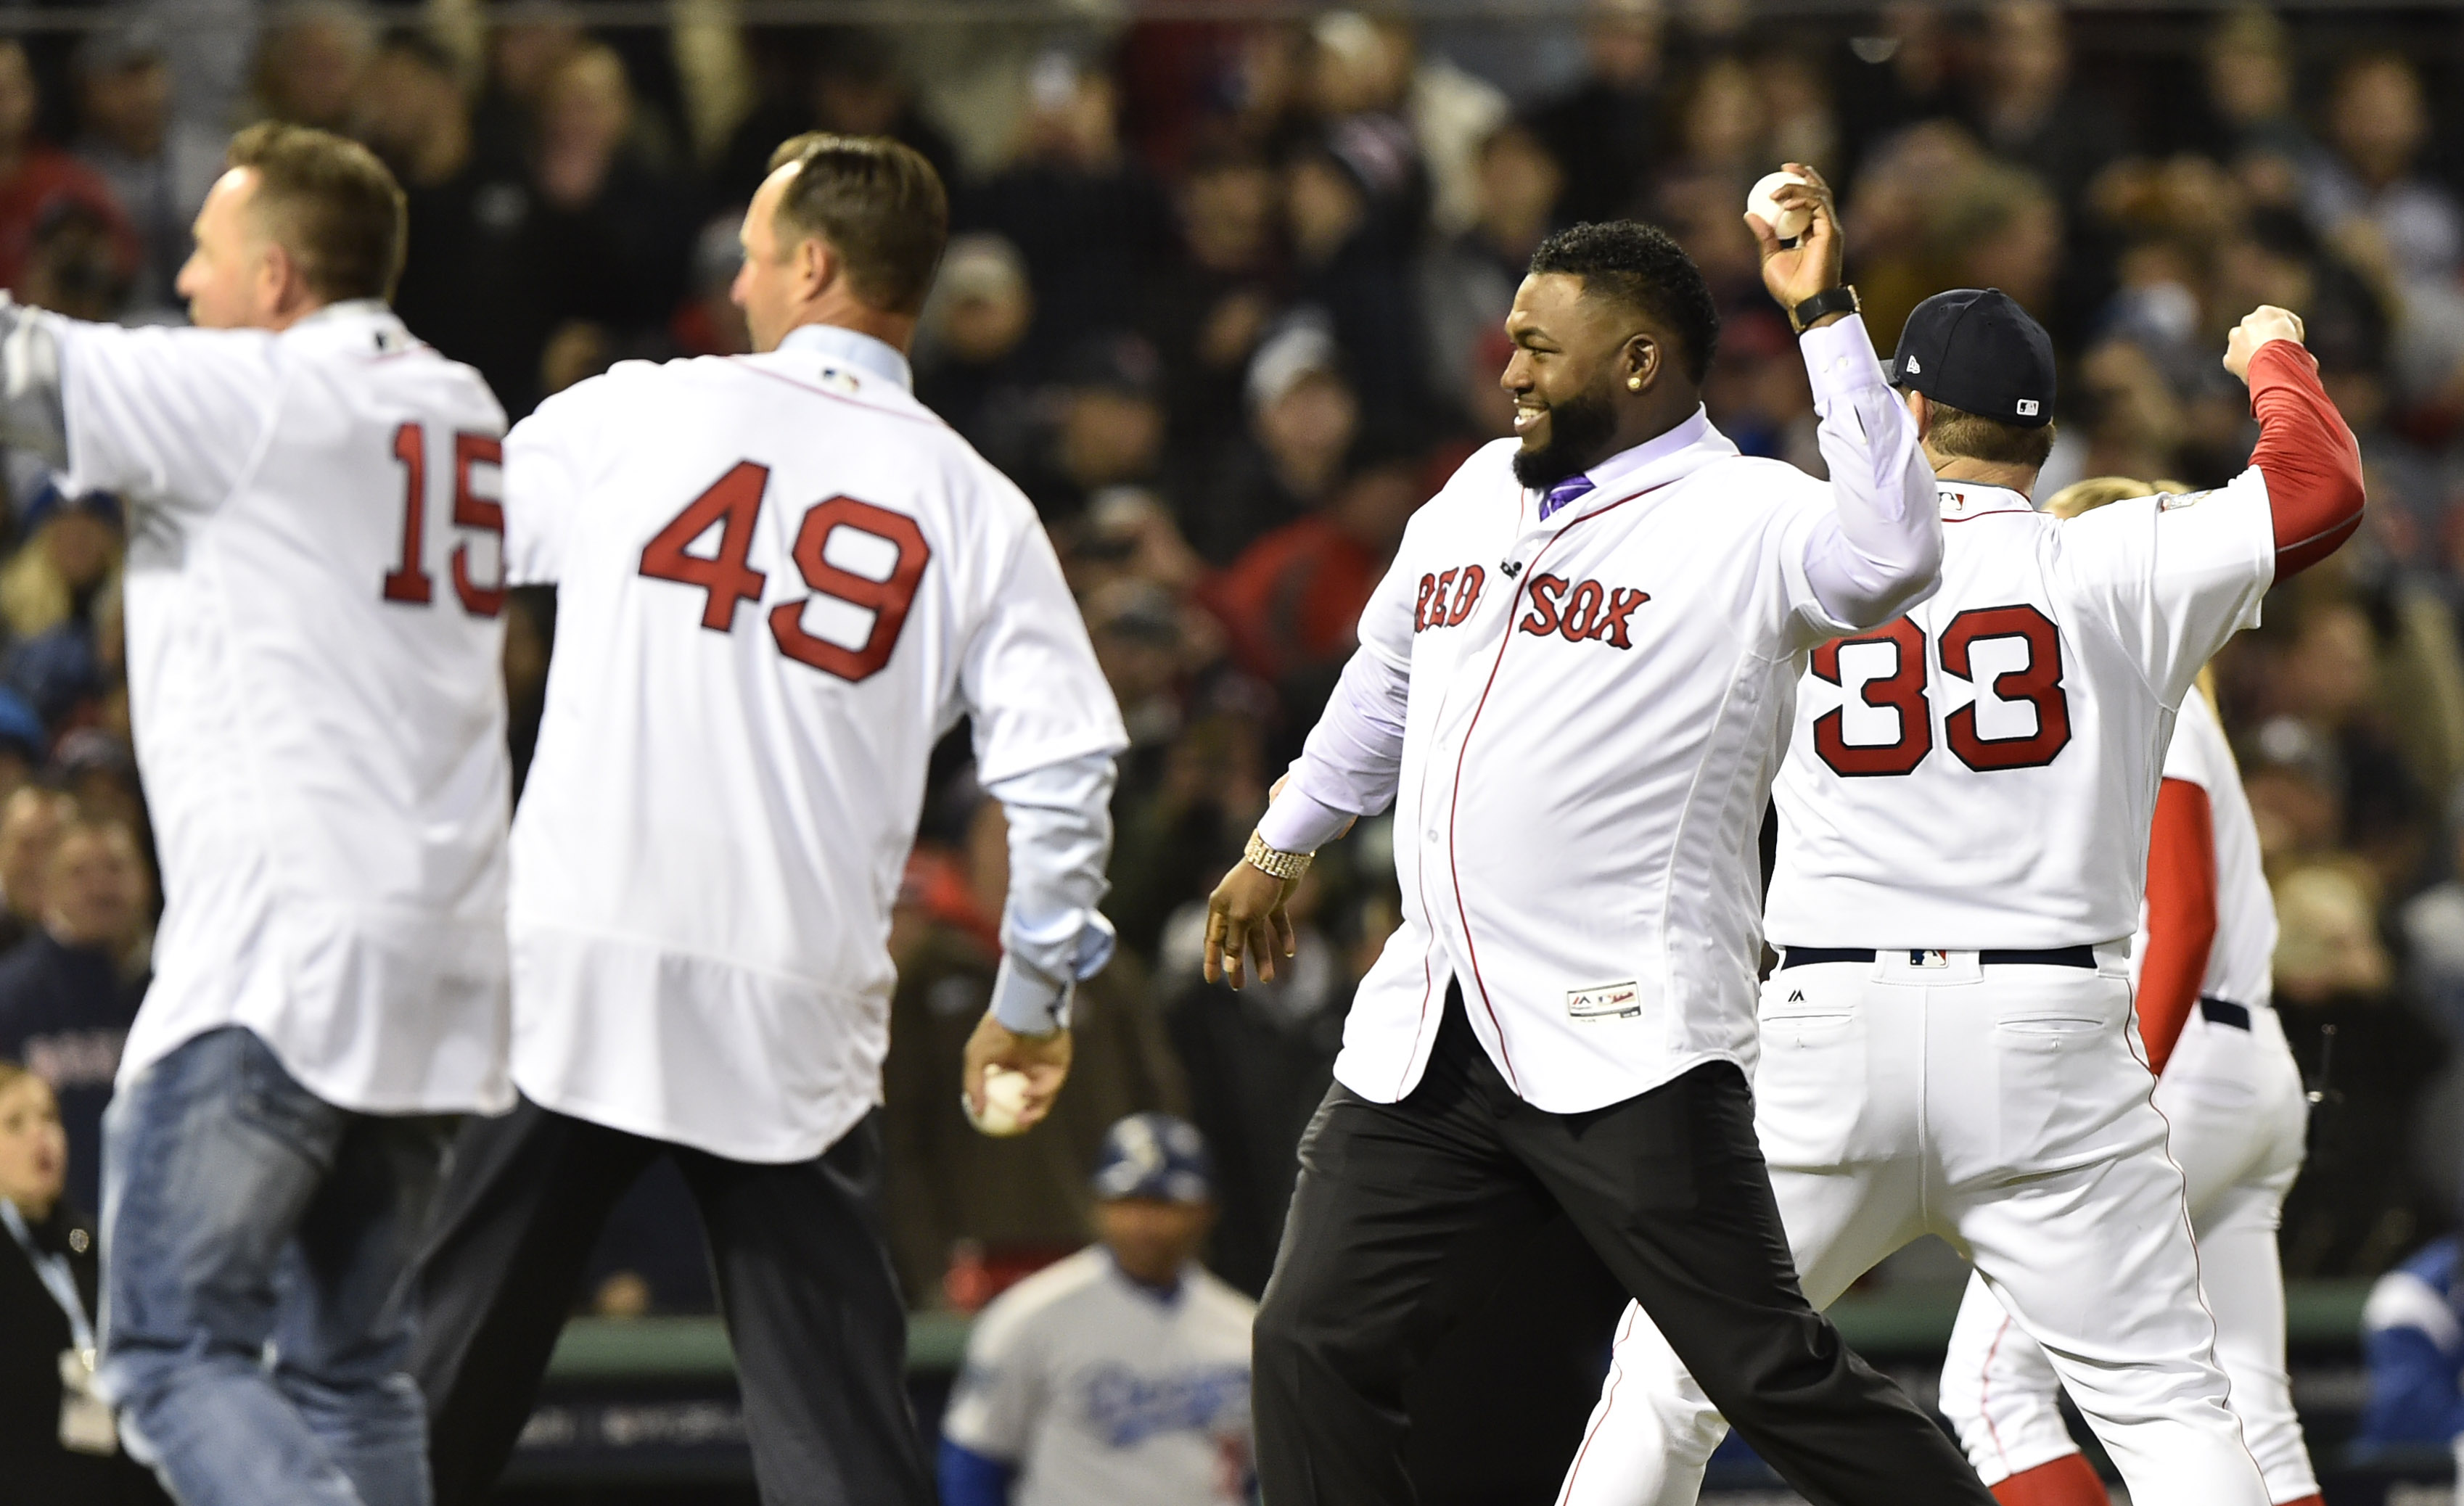 Red Sox stars (minus Curt Schilling) from 2004 World Series team throw out Game 2 first pitch